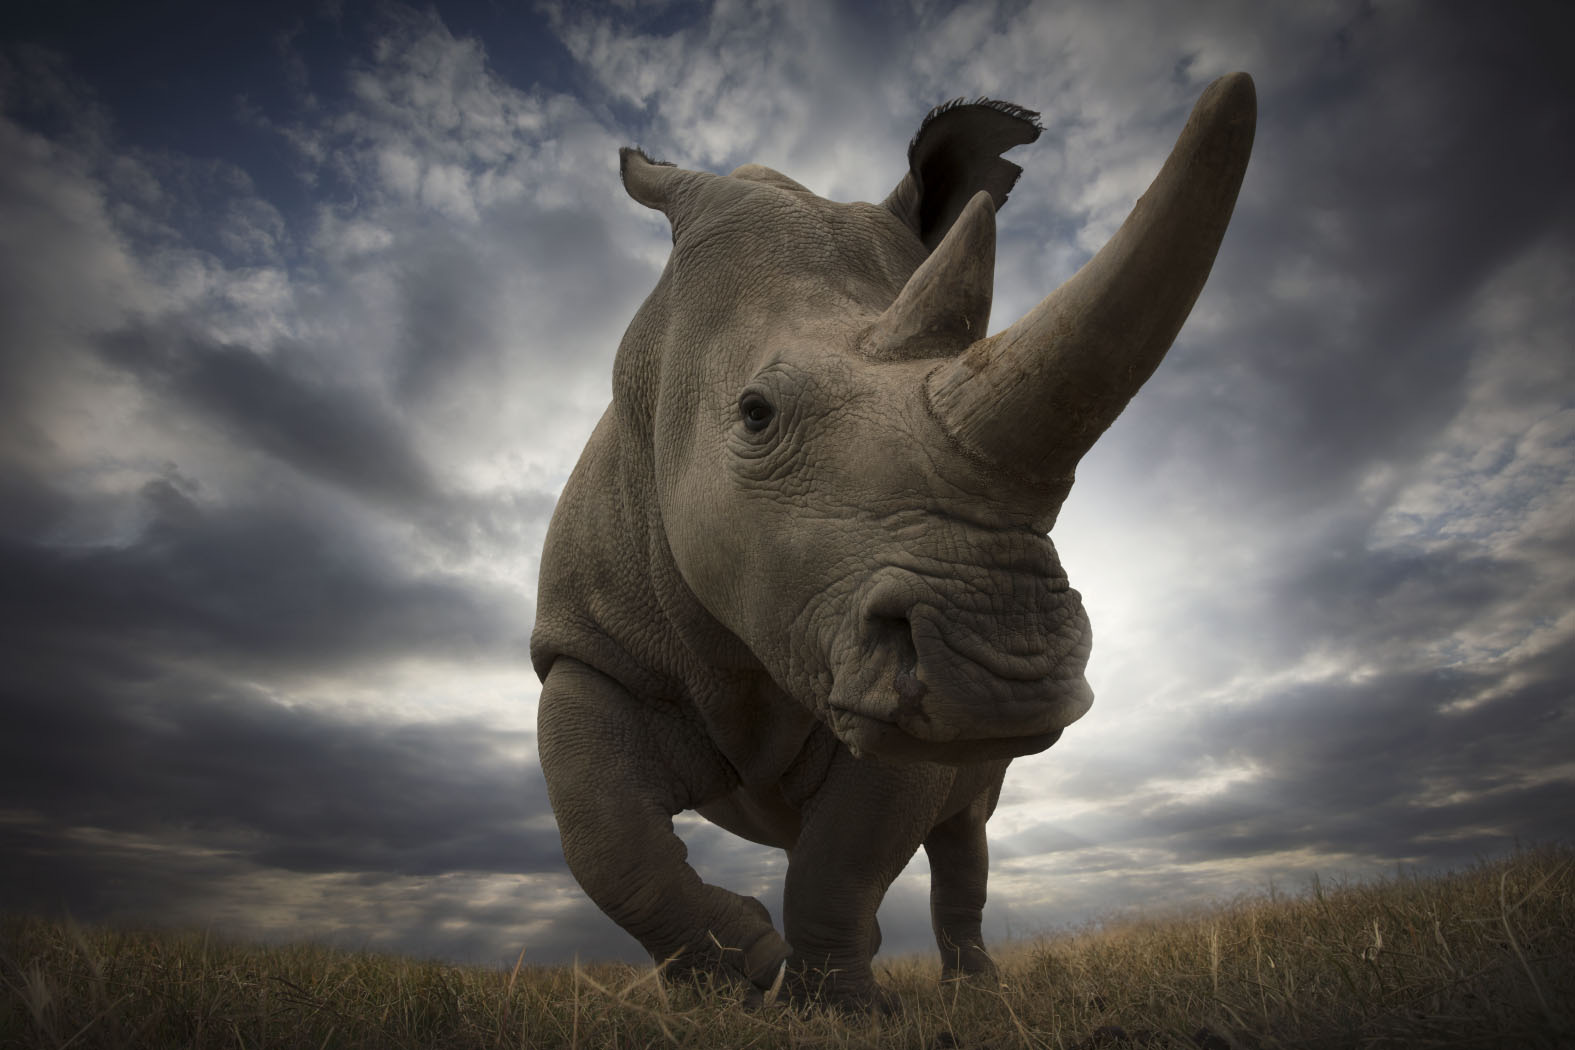 A rhino in Africa. Photo: Bjorn Persson